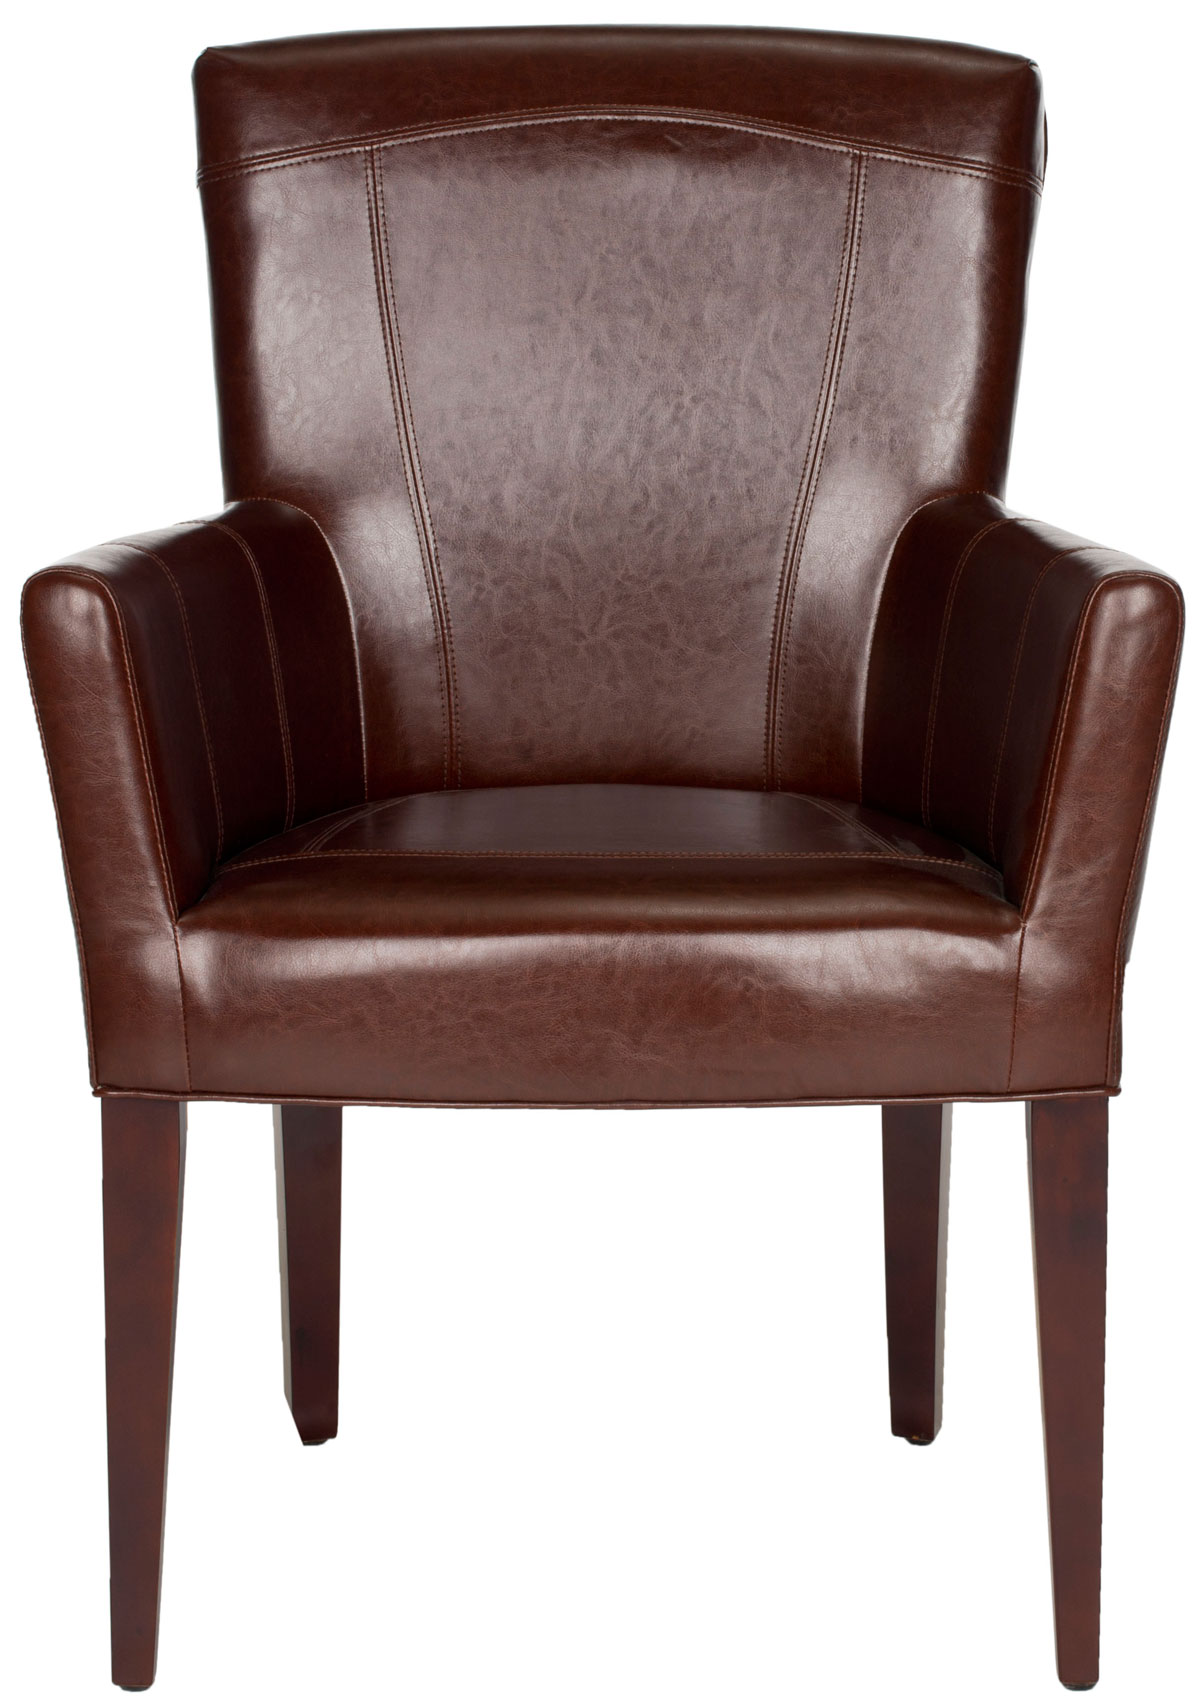 Mcr4710a Accent Chairs Furniture By Safavieh